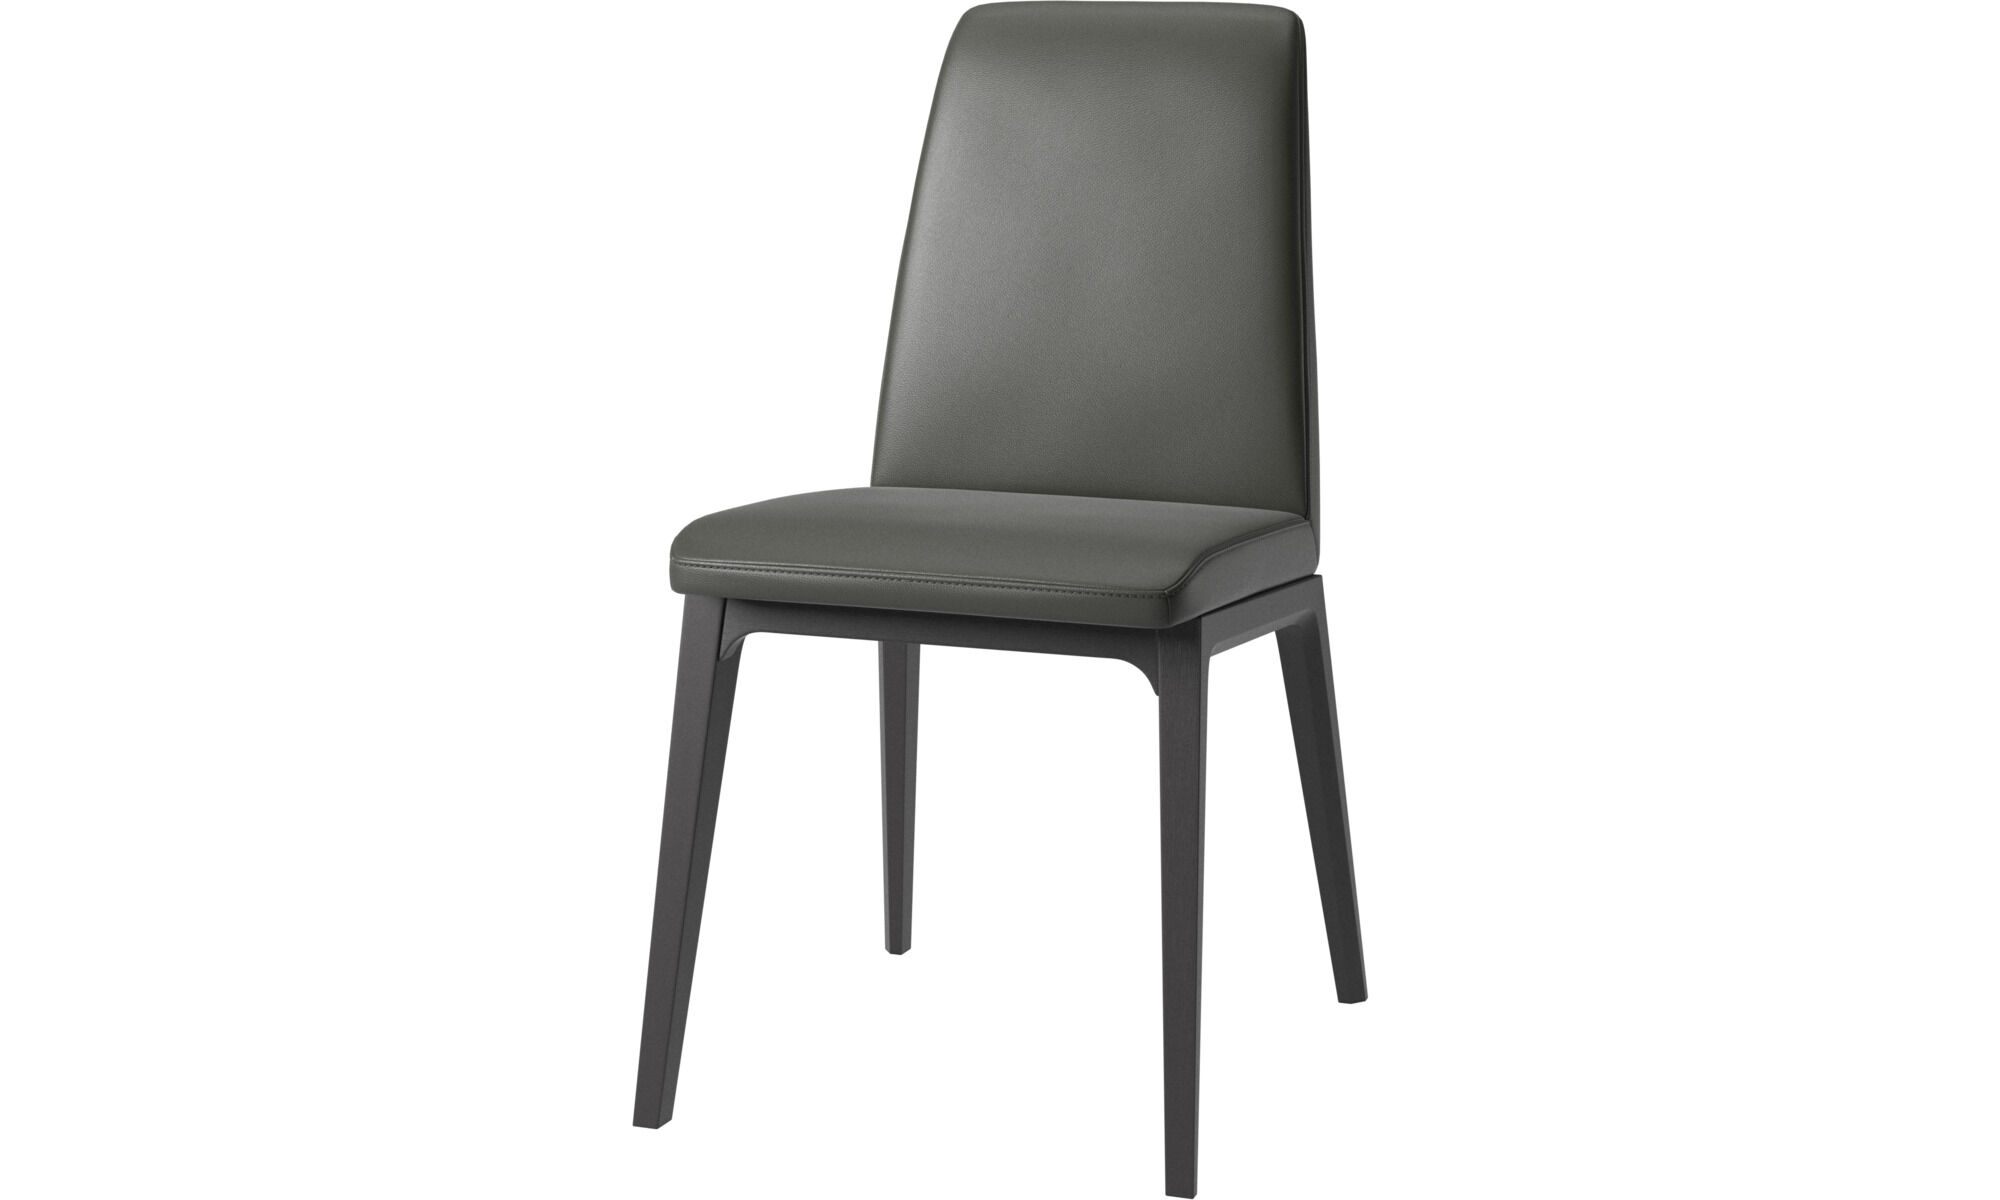 dining chairs lausanne chair grey leather